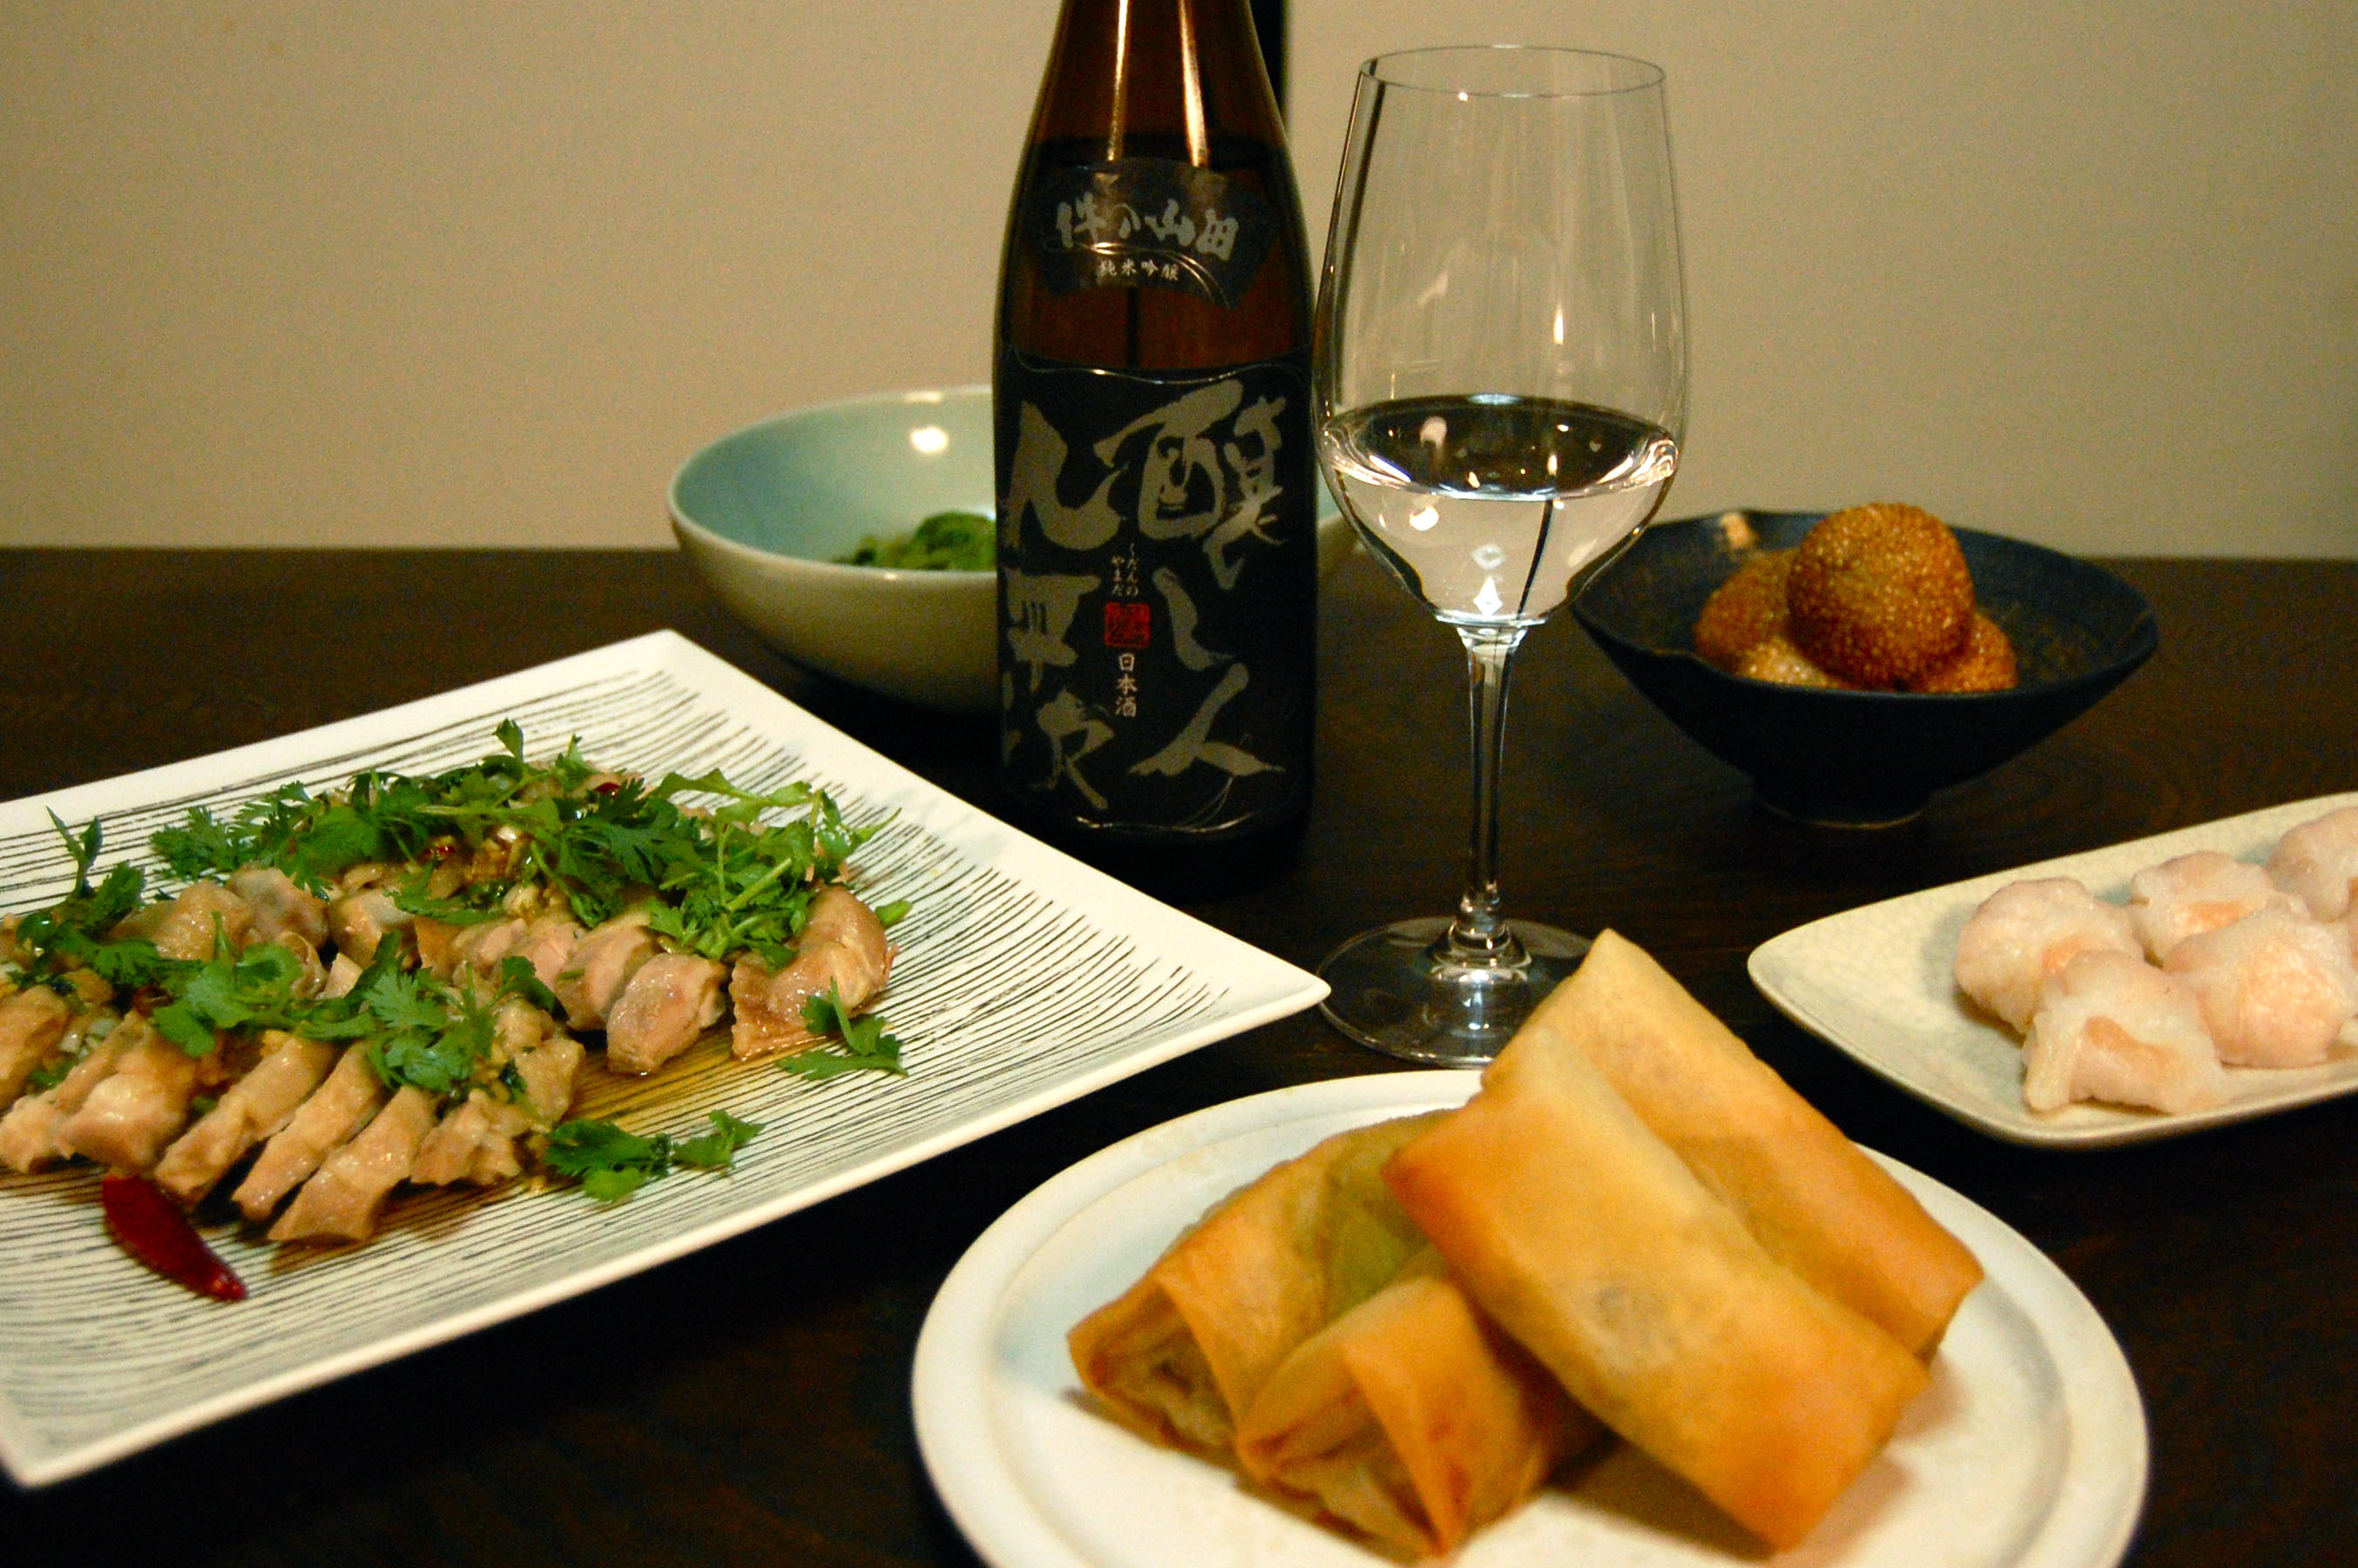 types of sake go great with Chinese food. This spread includes steamed ...